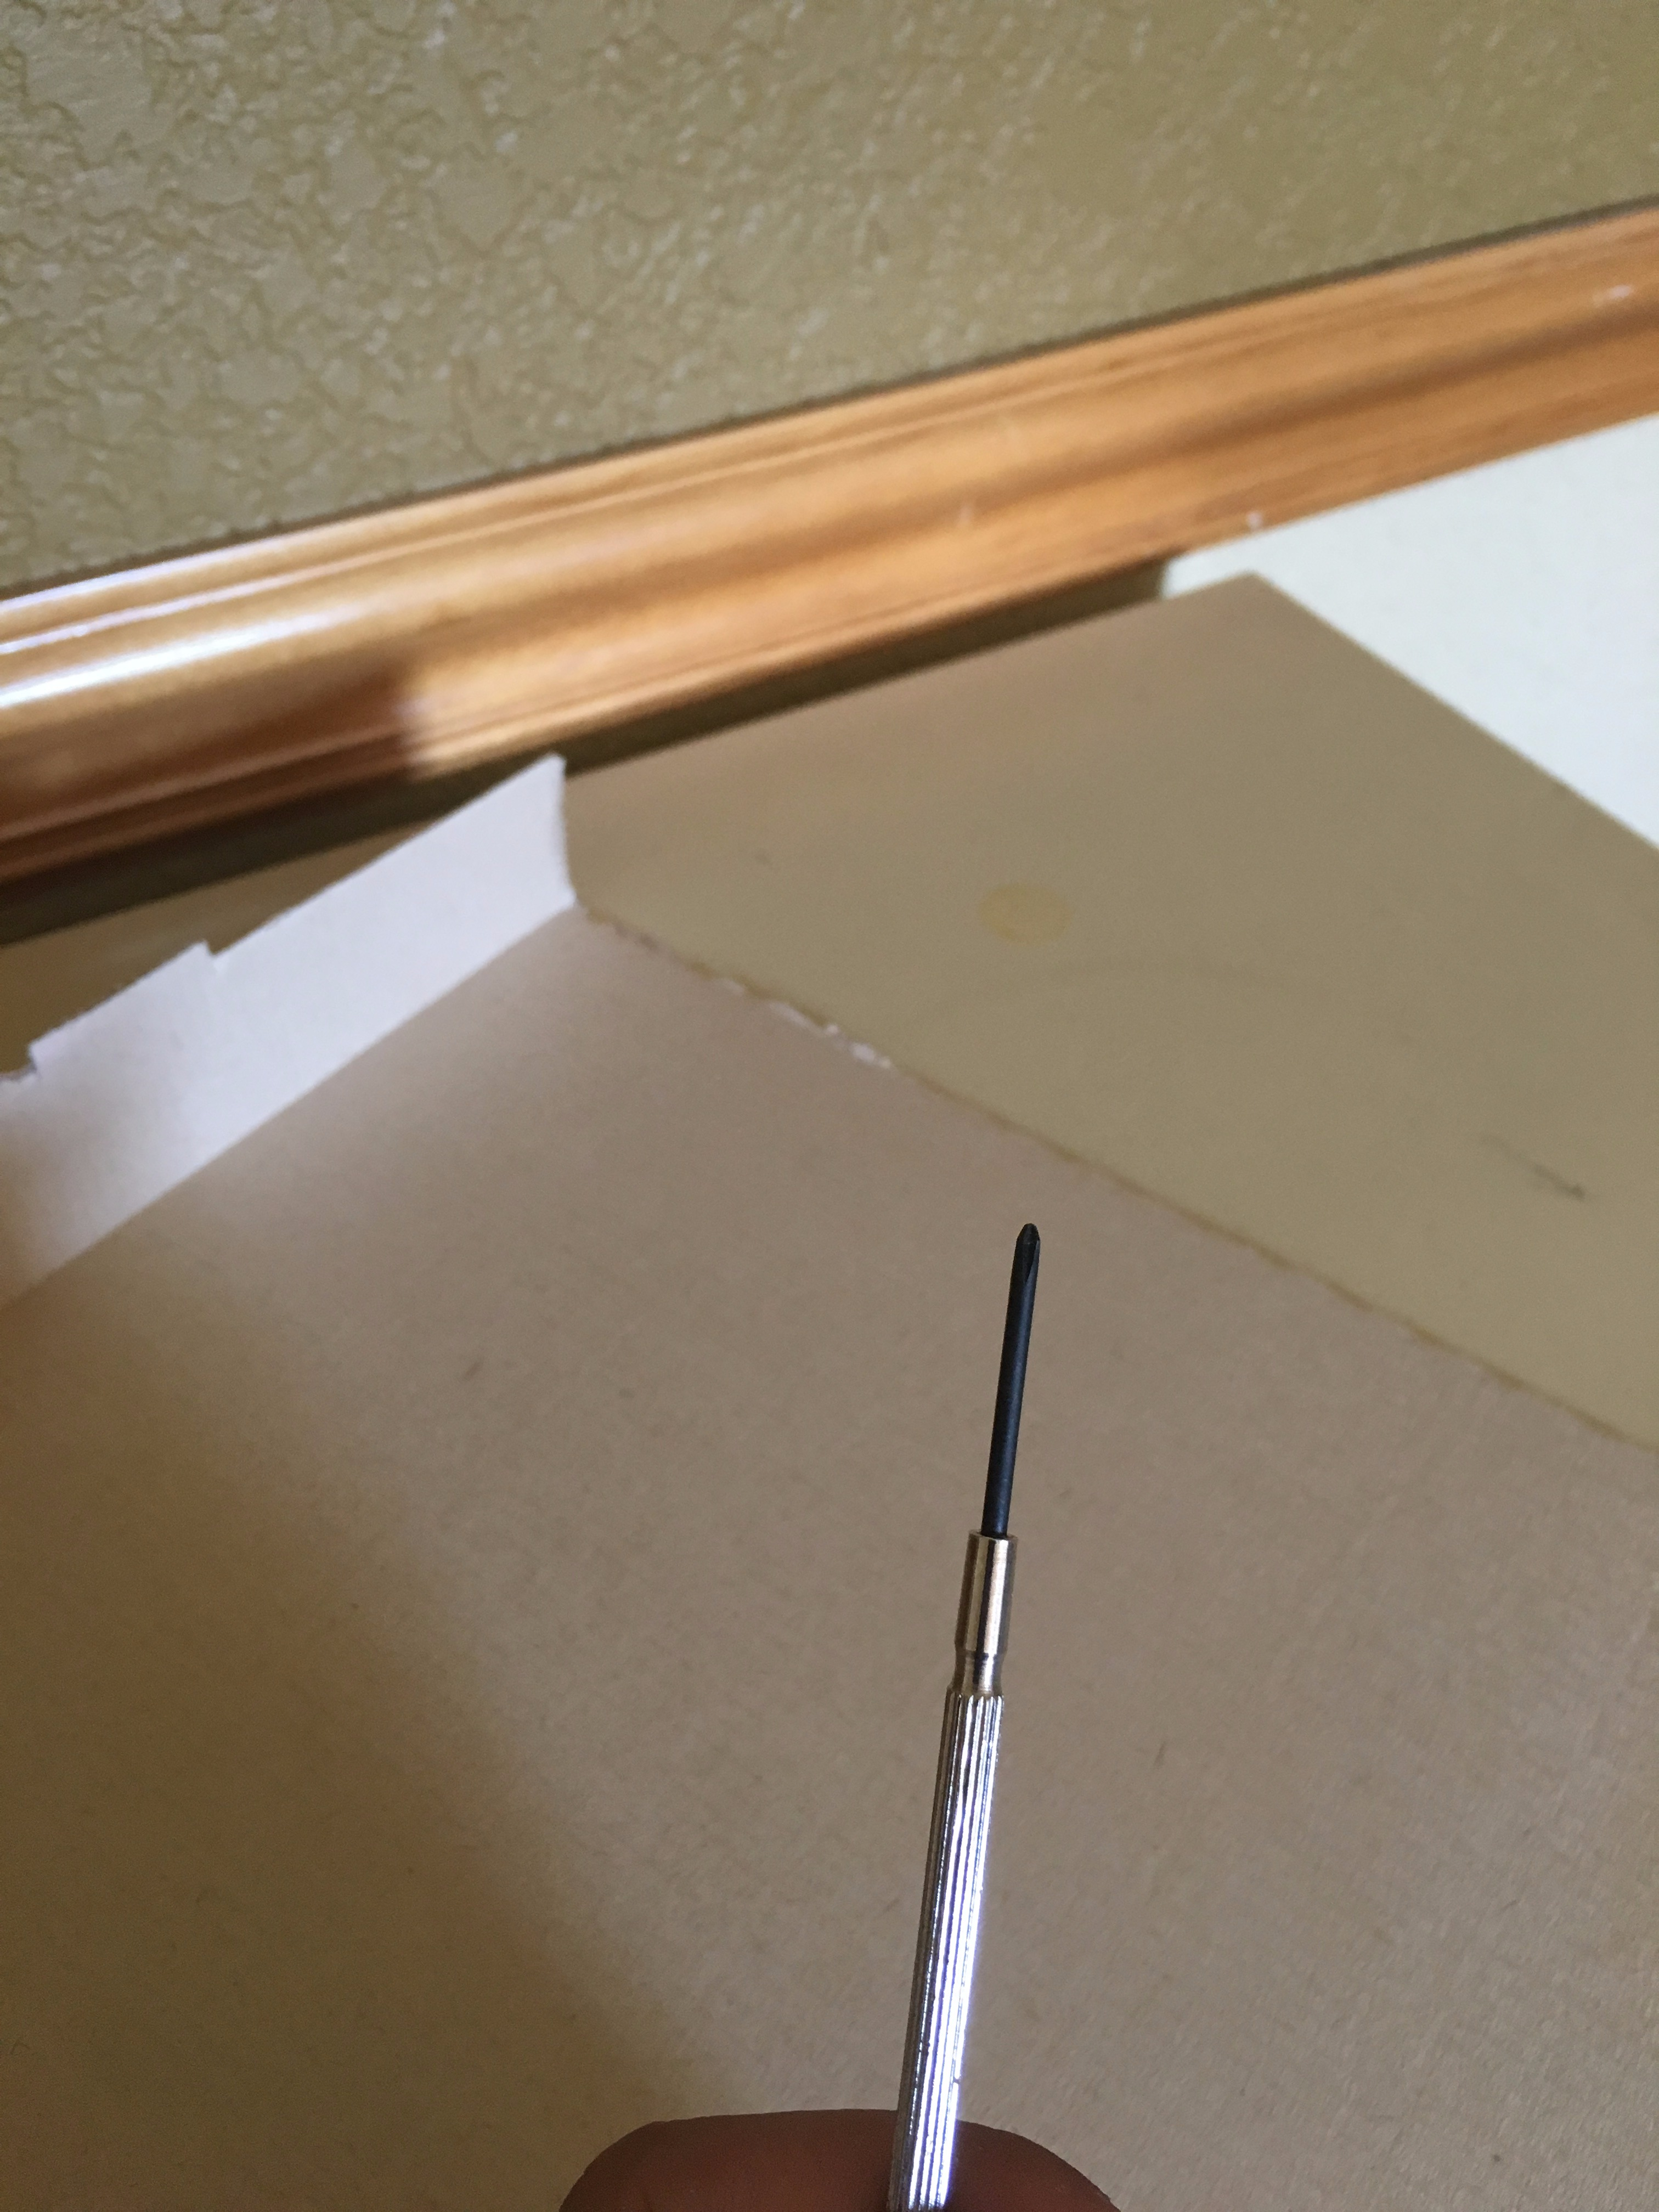 Picture of Preparing Cardboard and Base